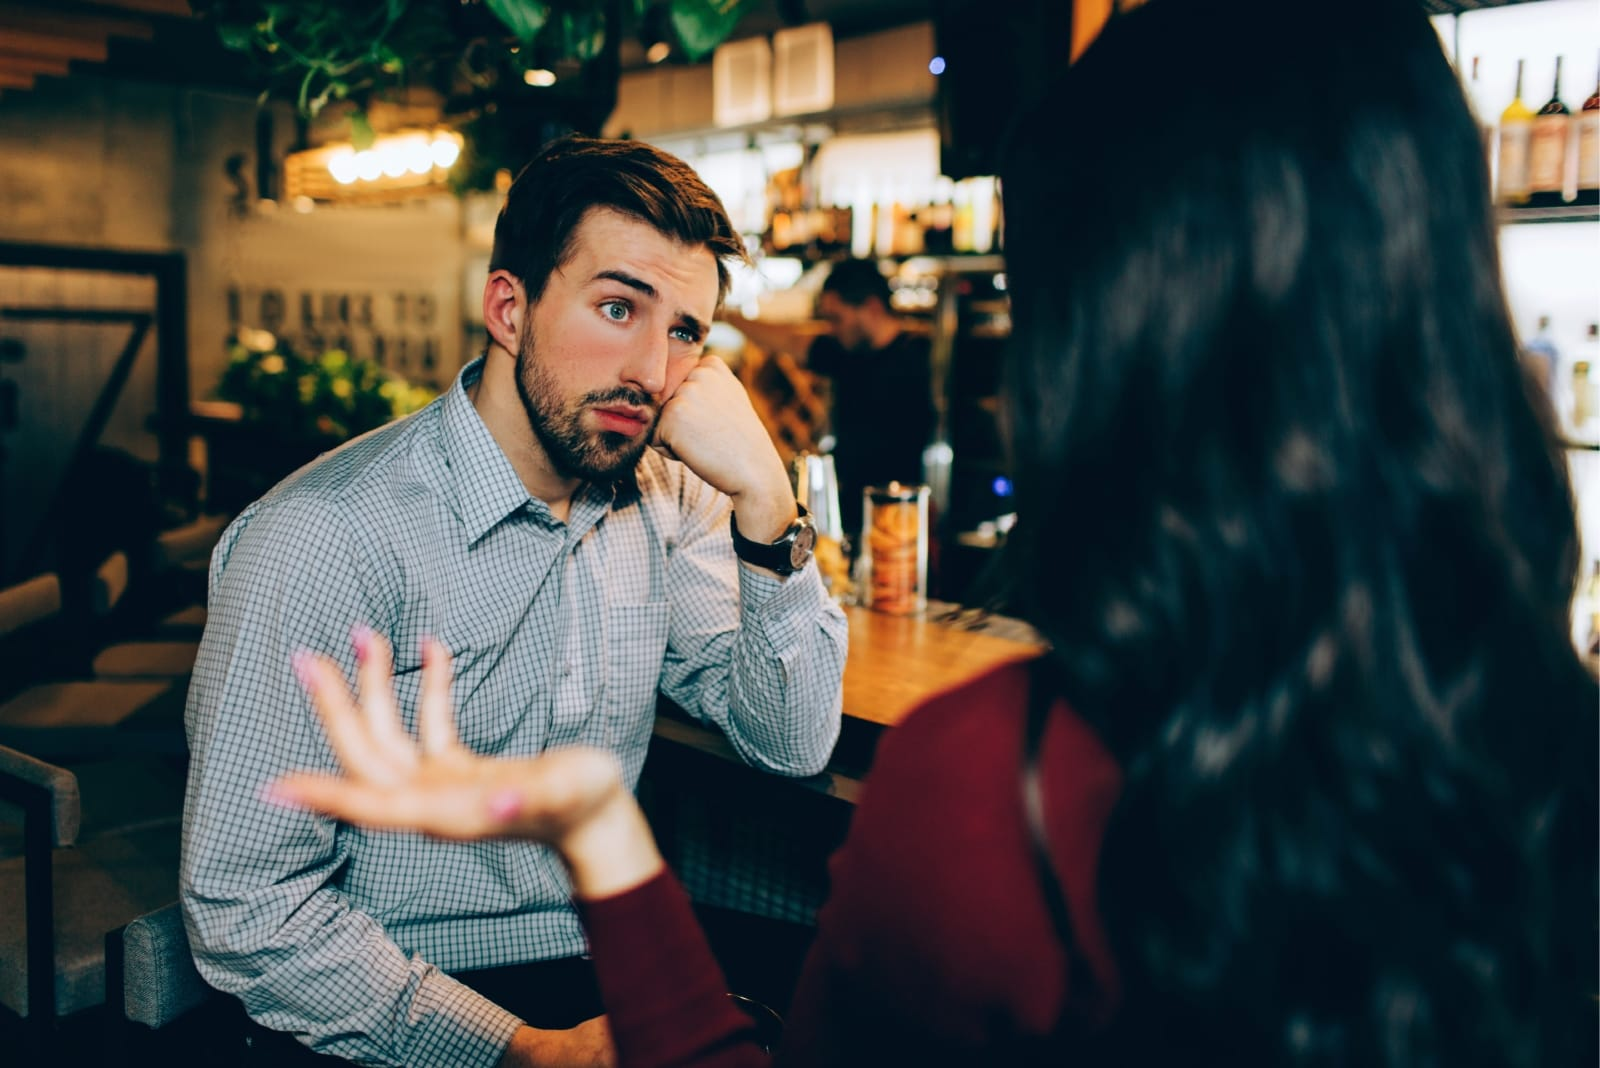 bored man looking at woman while sitting in bar